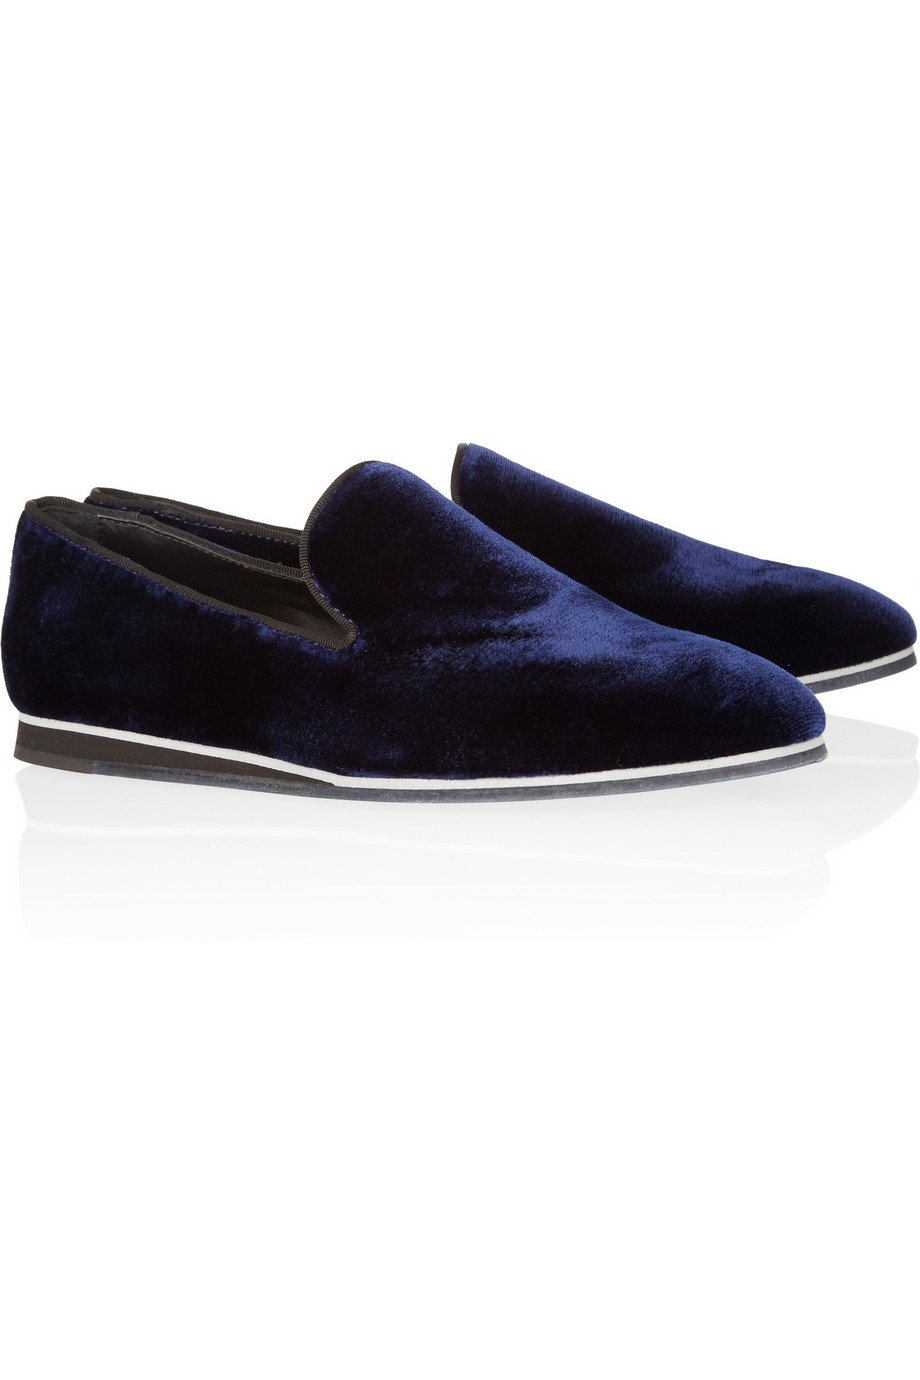 Hook up velvet slippers